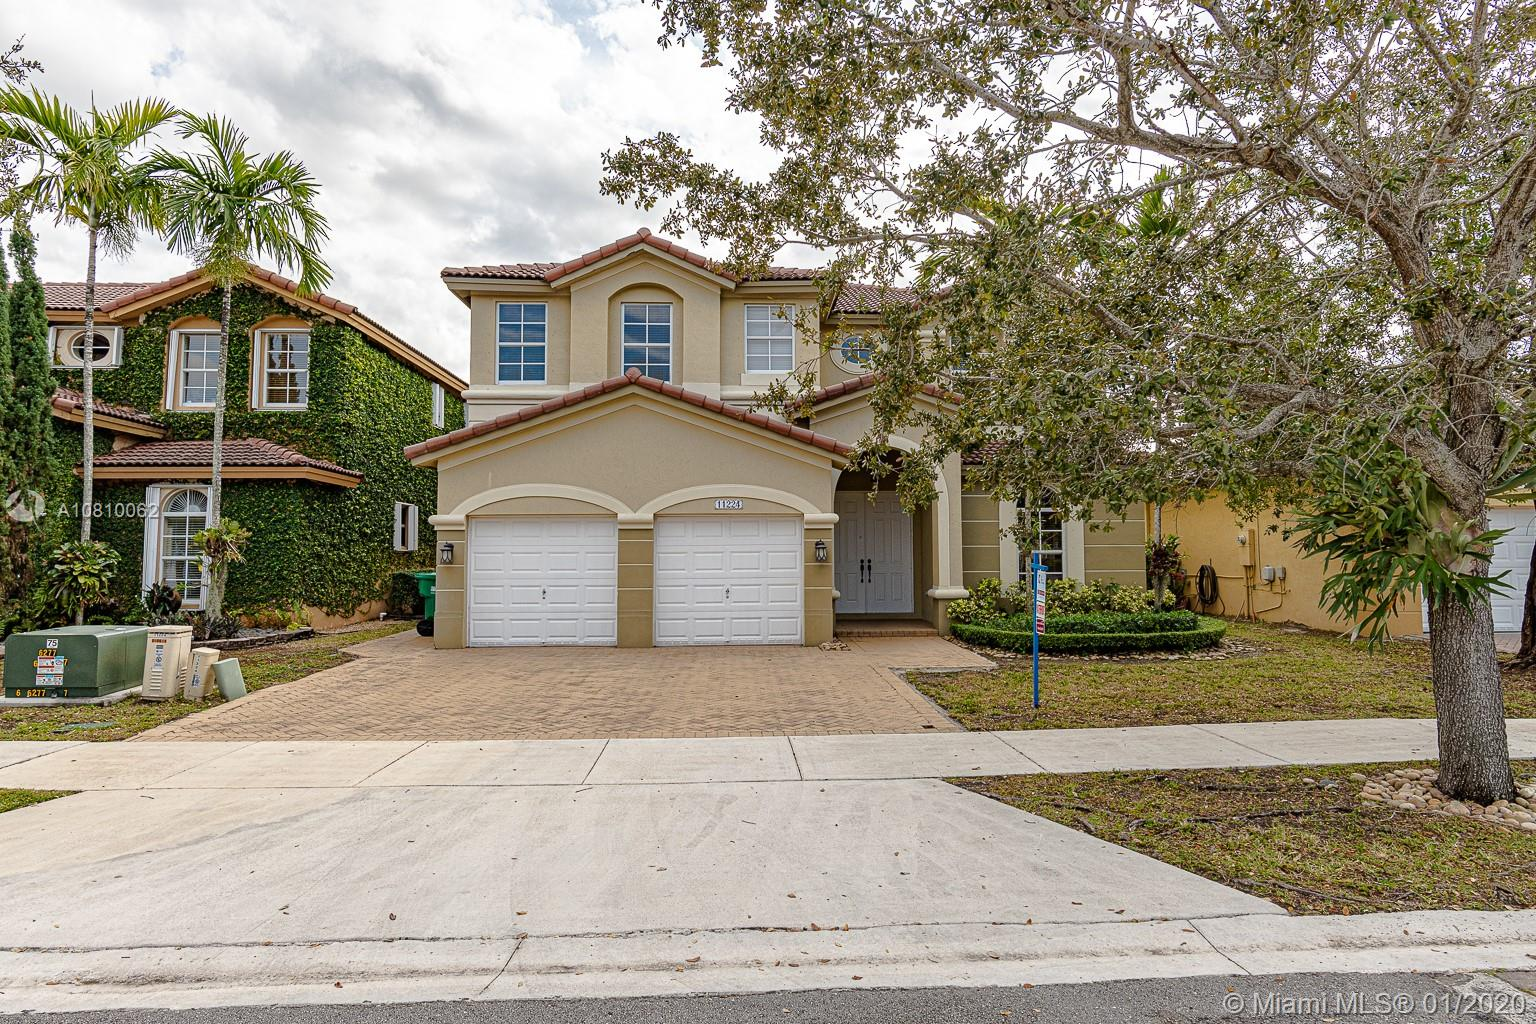 11224 NW 77th Ter, Doral, Florida 33178, 4 Bedrooms Bedrooms, ,4 BathroomsBathrooms,Residential,For Sale,11224 NW 77th Ter,A10810062